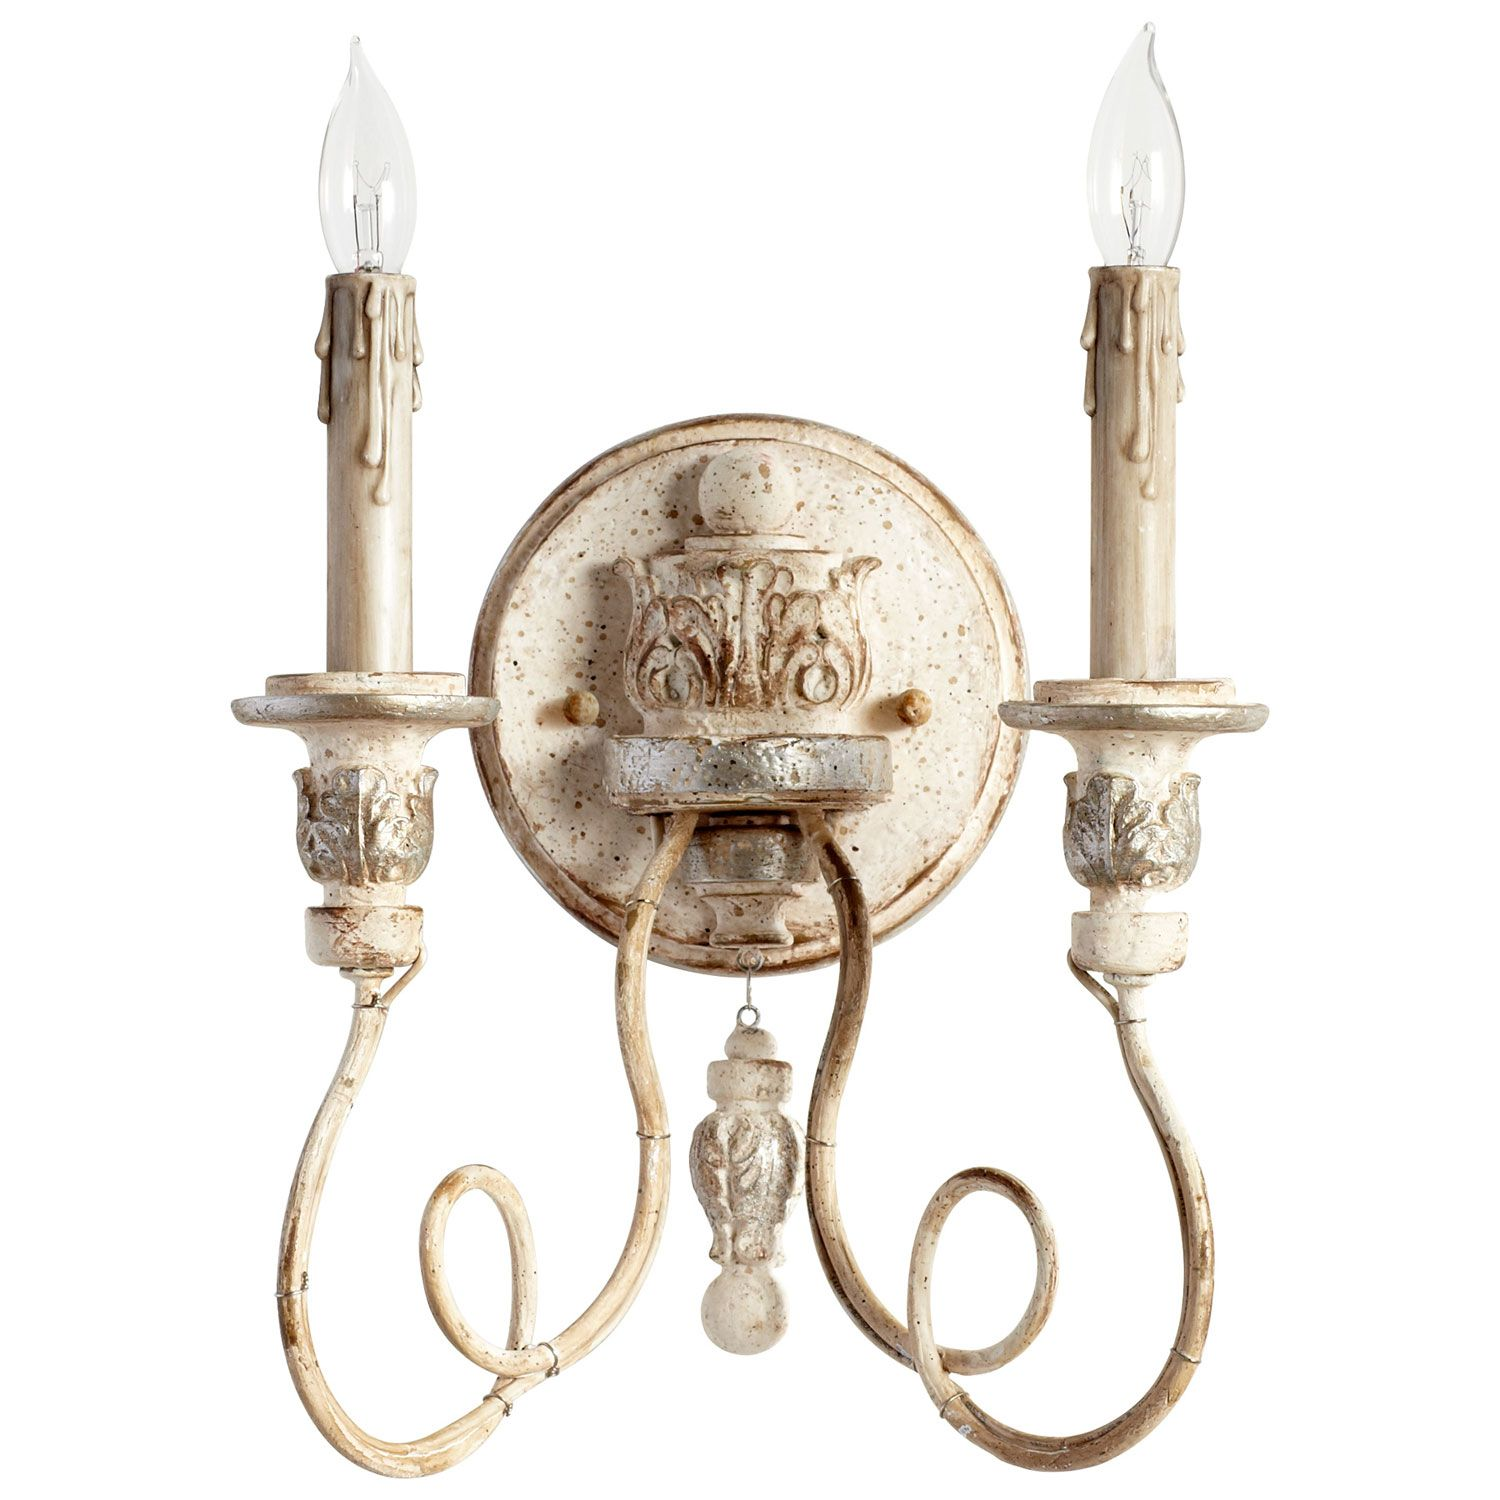 Mystic silver and company - Cyan Design Florine Persian White And Mystic Silver Two Light Wall Sconce